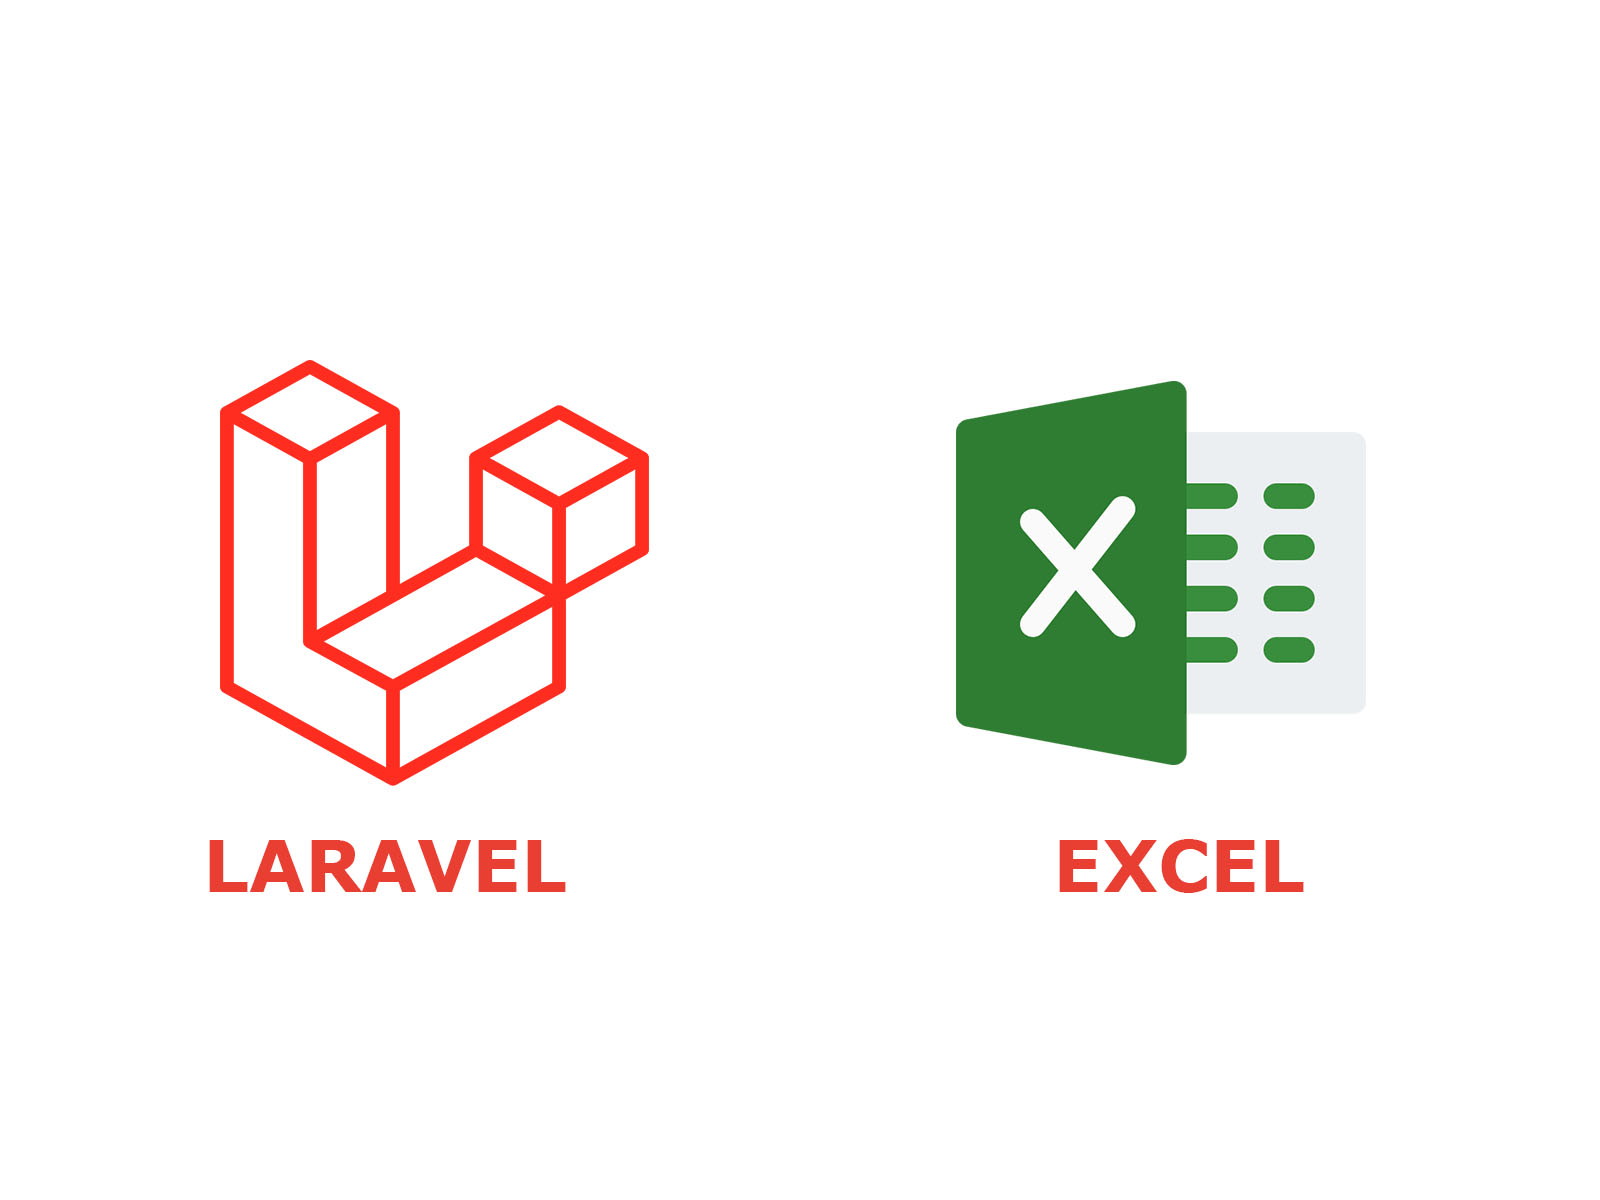 Generate excel file in laravel